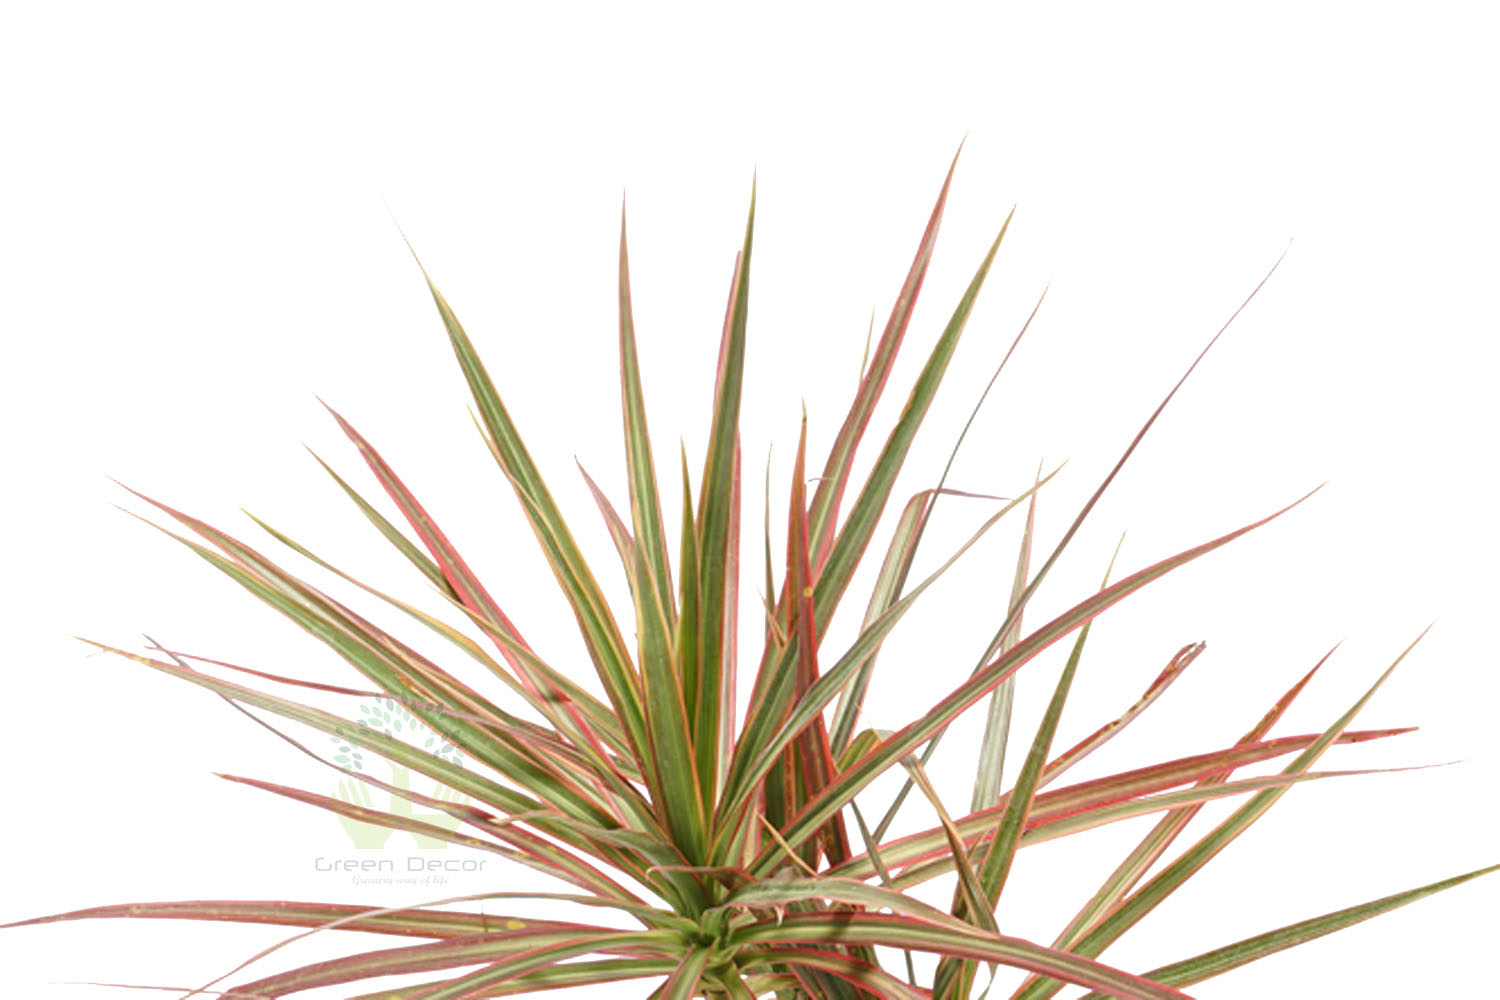 Buy Dracaena Marginata Tricolor Plant Leaves View, White Pots and Seeds in Delhi NCR by the best online nursery shop Greendecor.